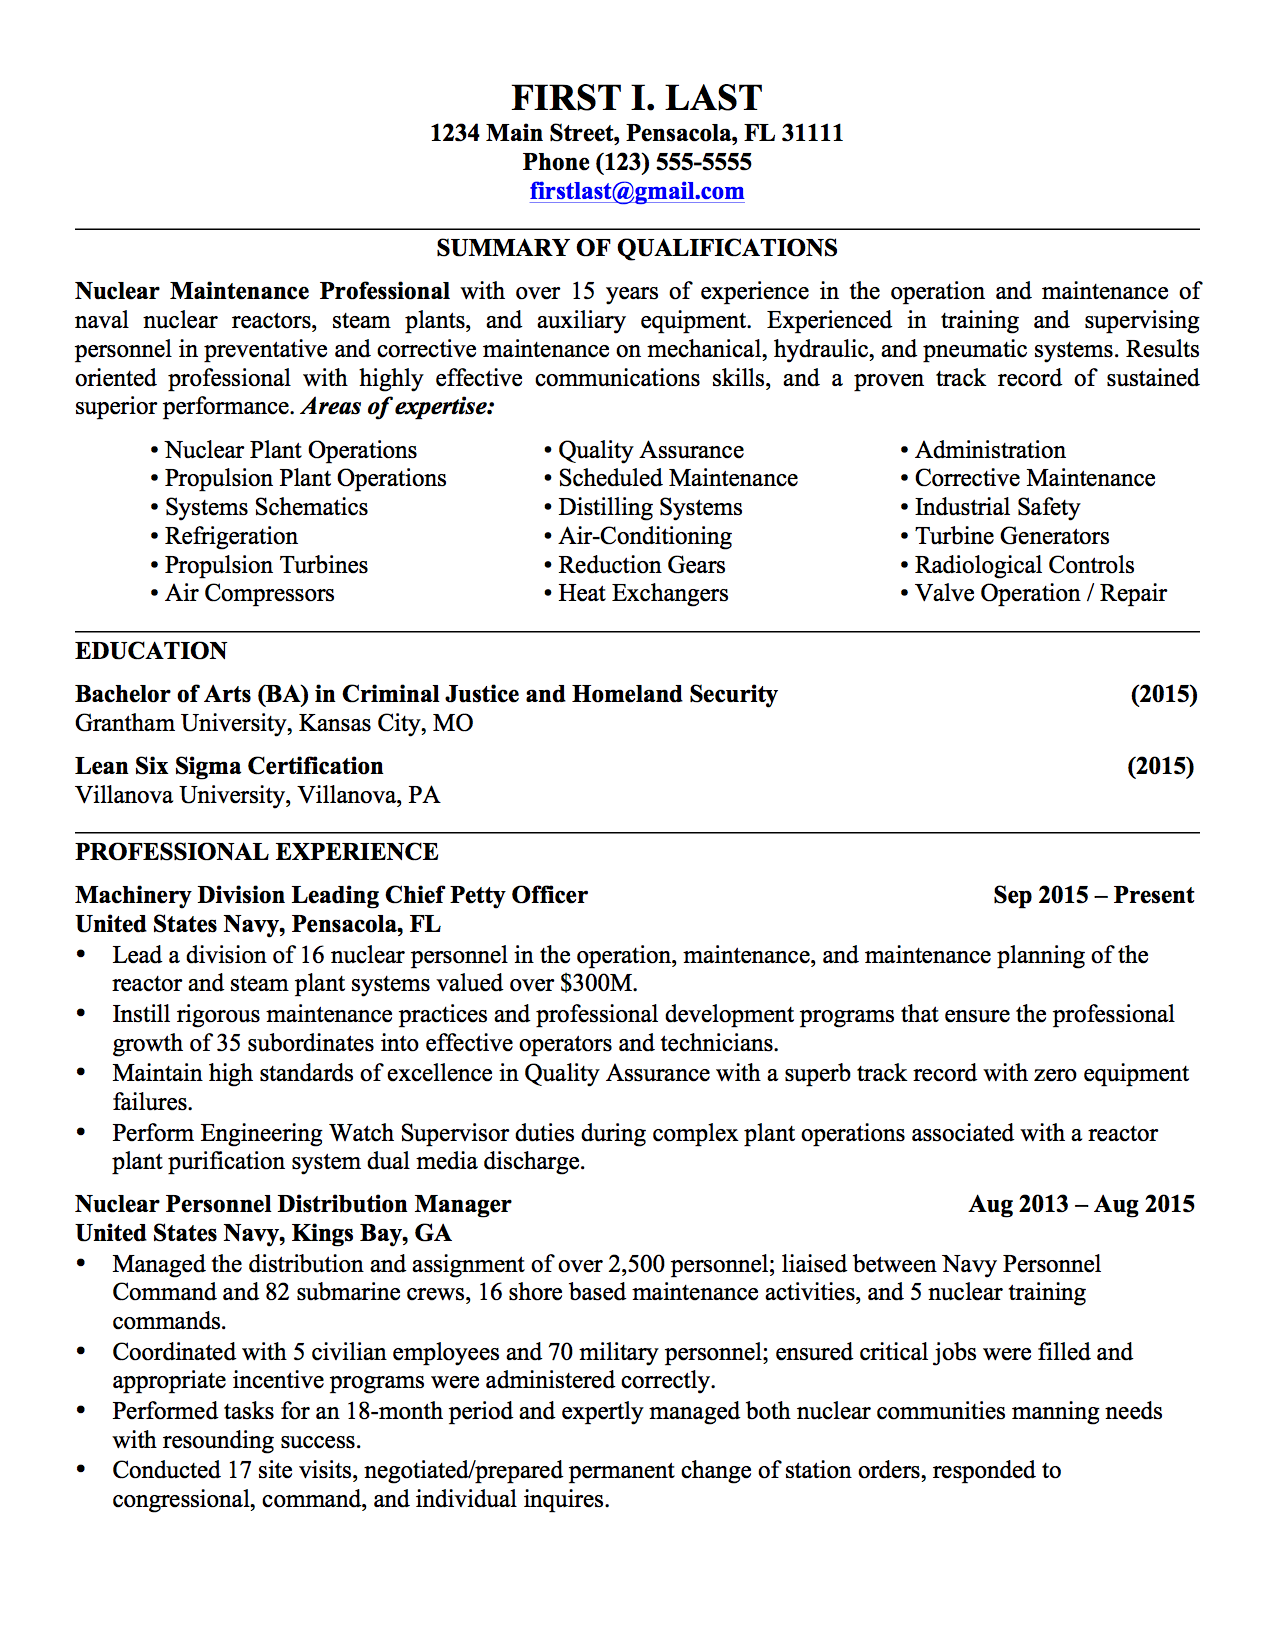 2 pages - Military Mechanical Engineer Sample Resume